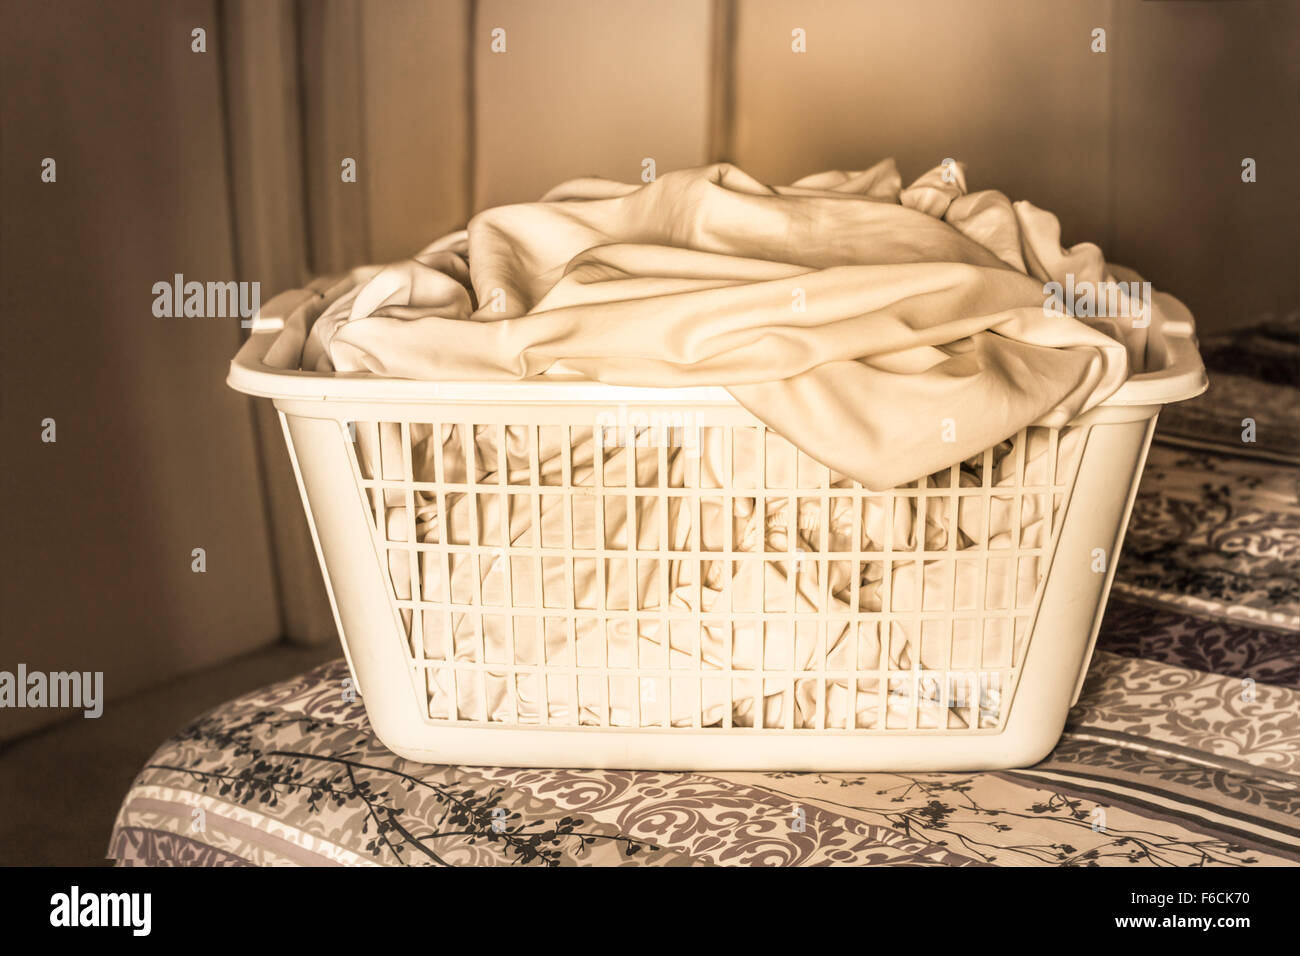 Plastic laundry basket with sheets on bed - Stock Image